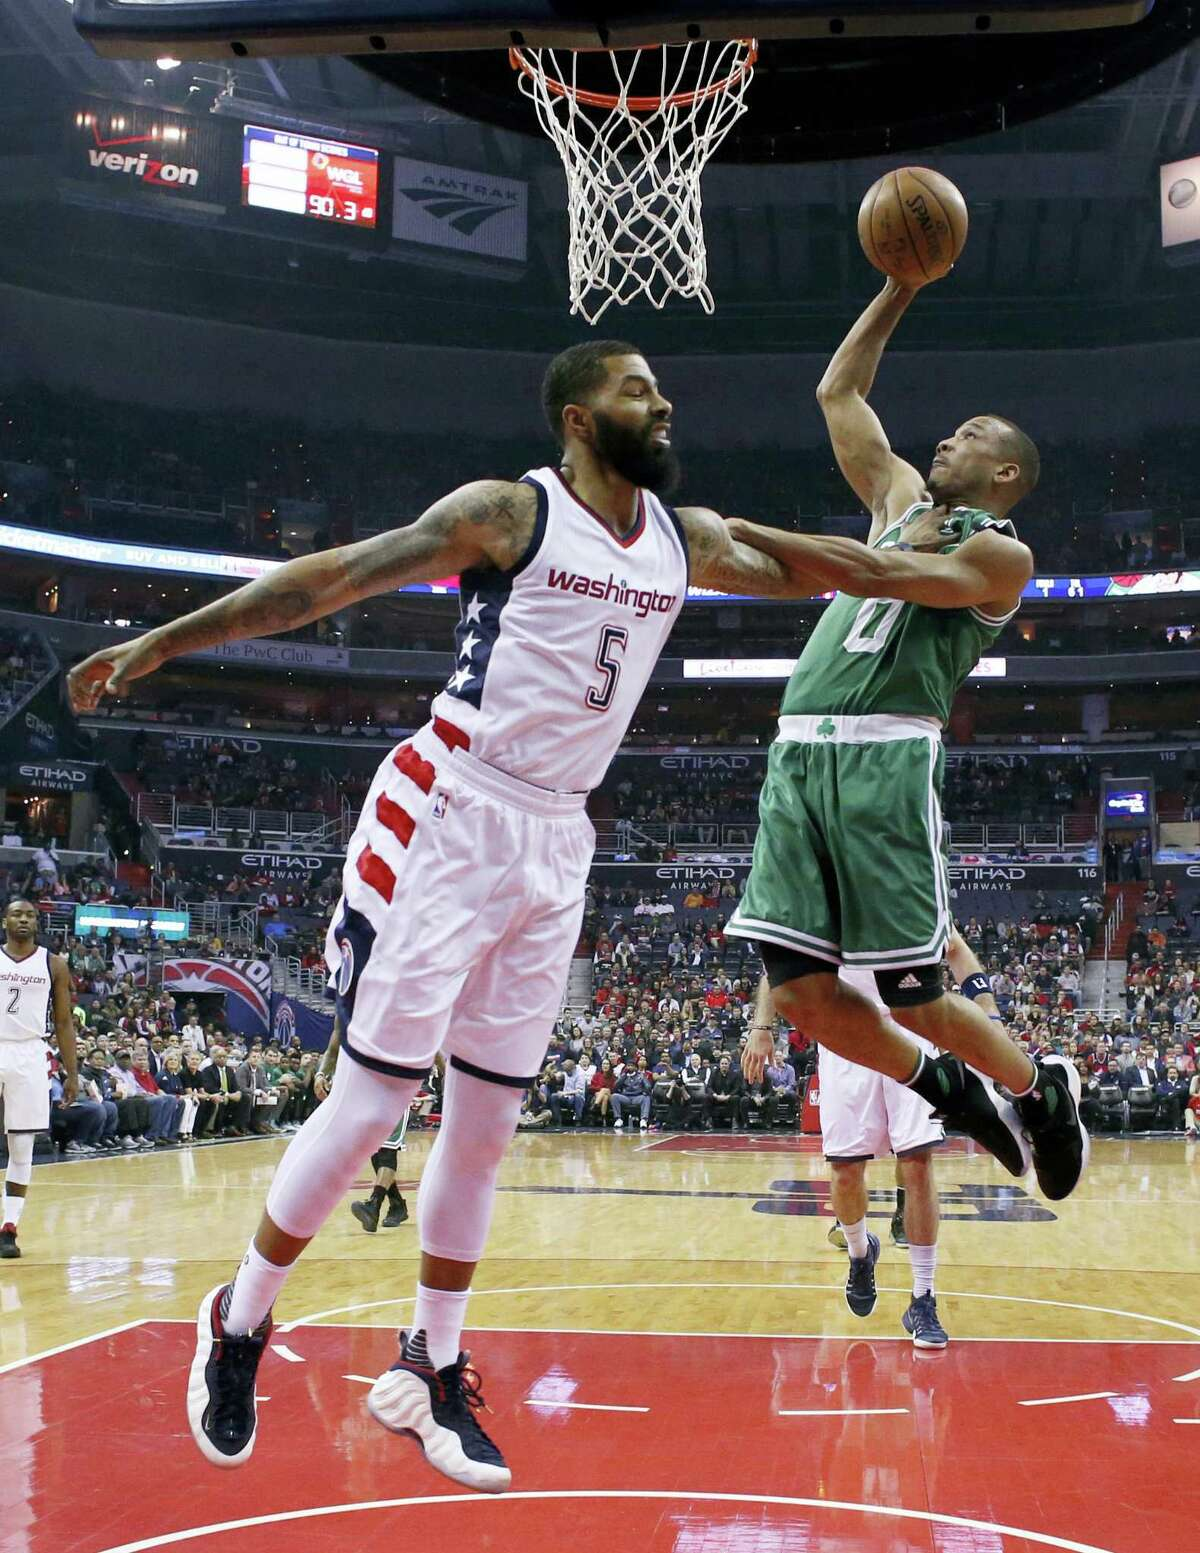 Celtics guard Avery Bradley, right, shoots over Wizards forward Markieff Morris during the first half Friday.